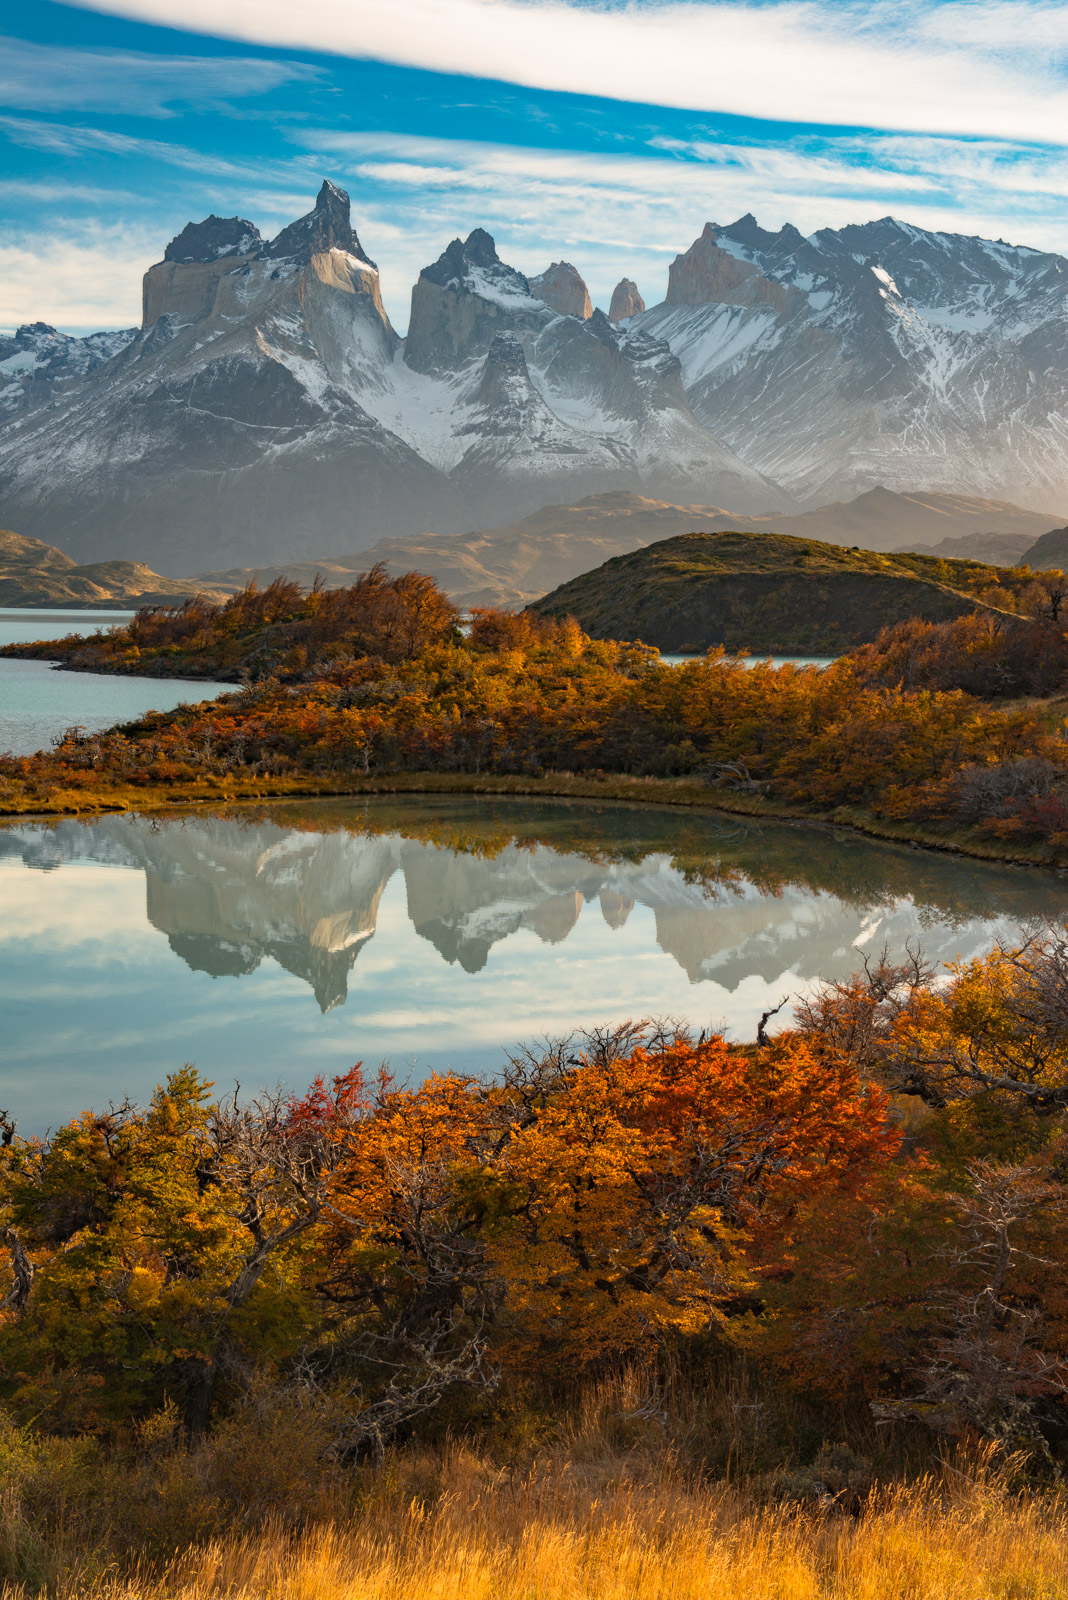 The peaks of Torre Del Paine reflected in the still waters of Lago Pehoe with stunning autumn colors